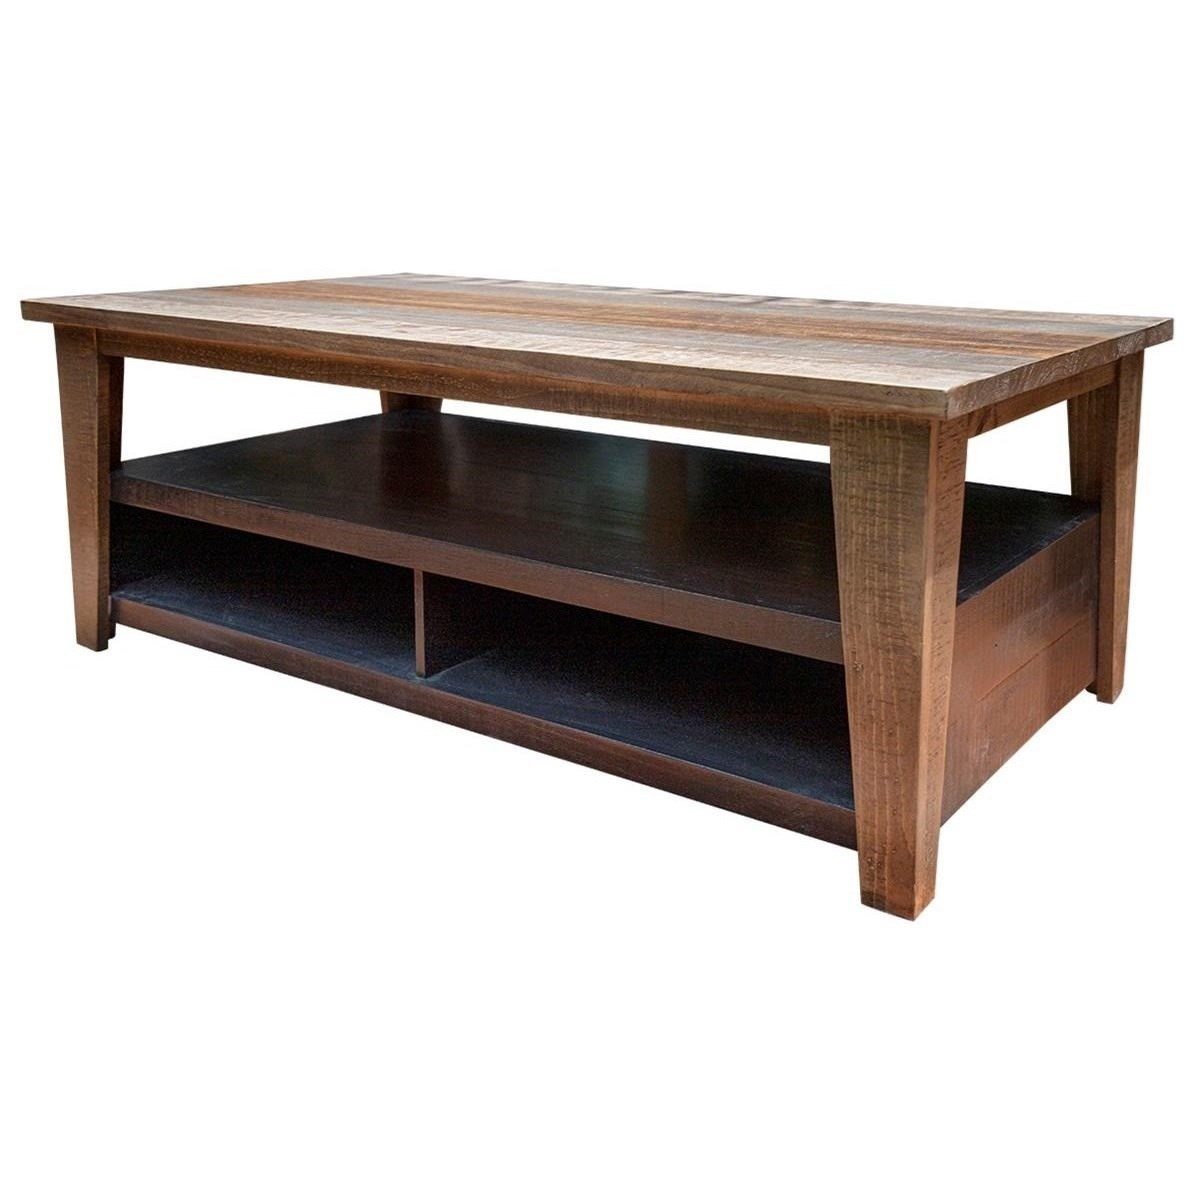 Rustic Cocktail Table with Hidden Casters